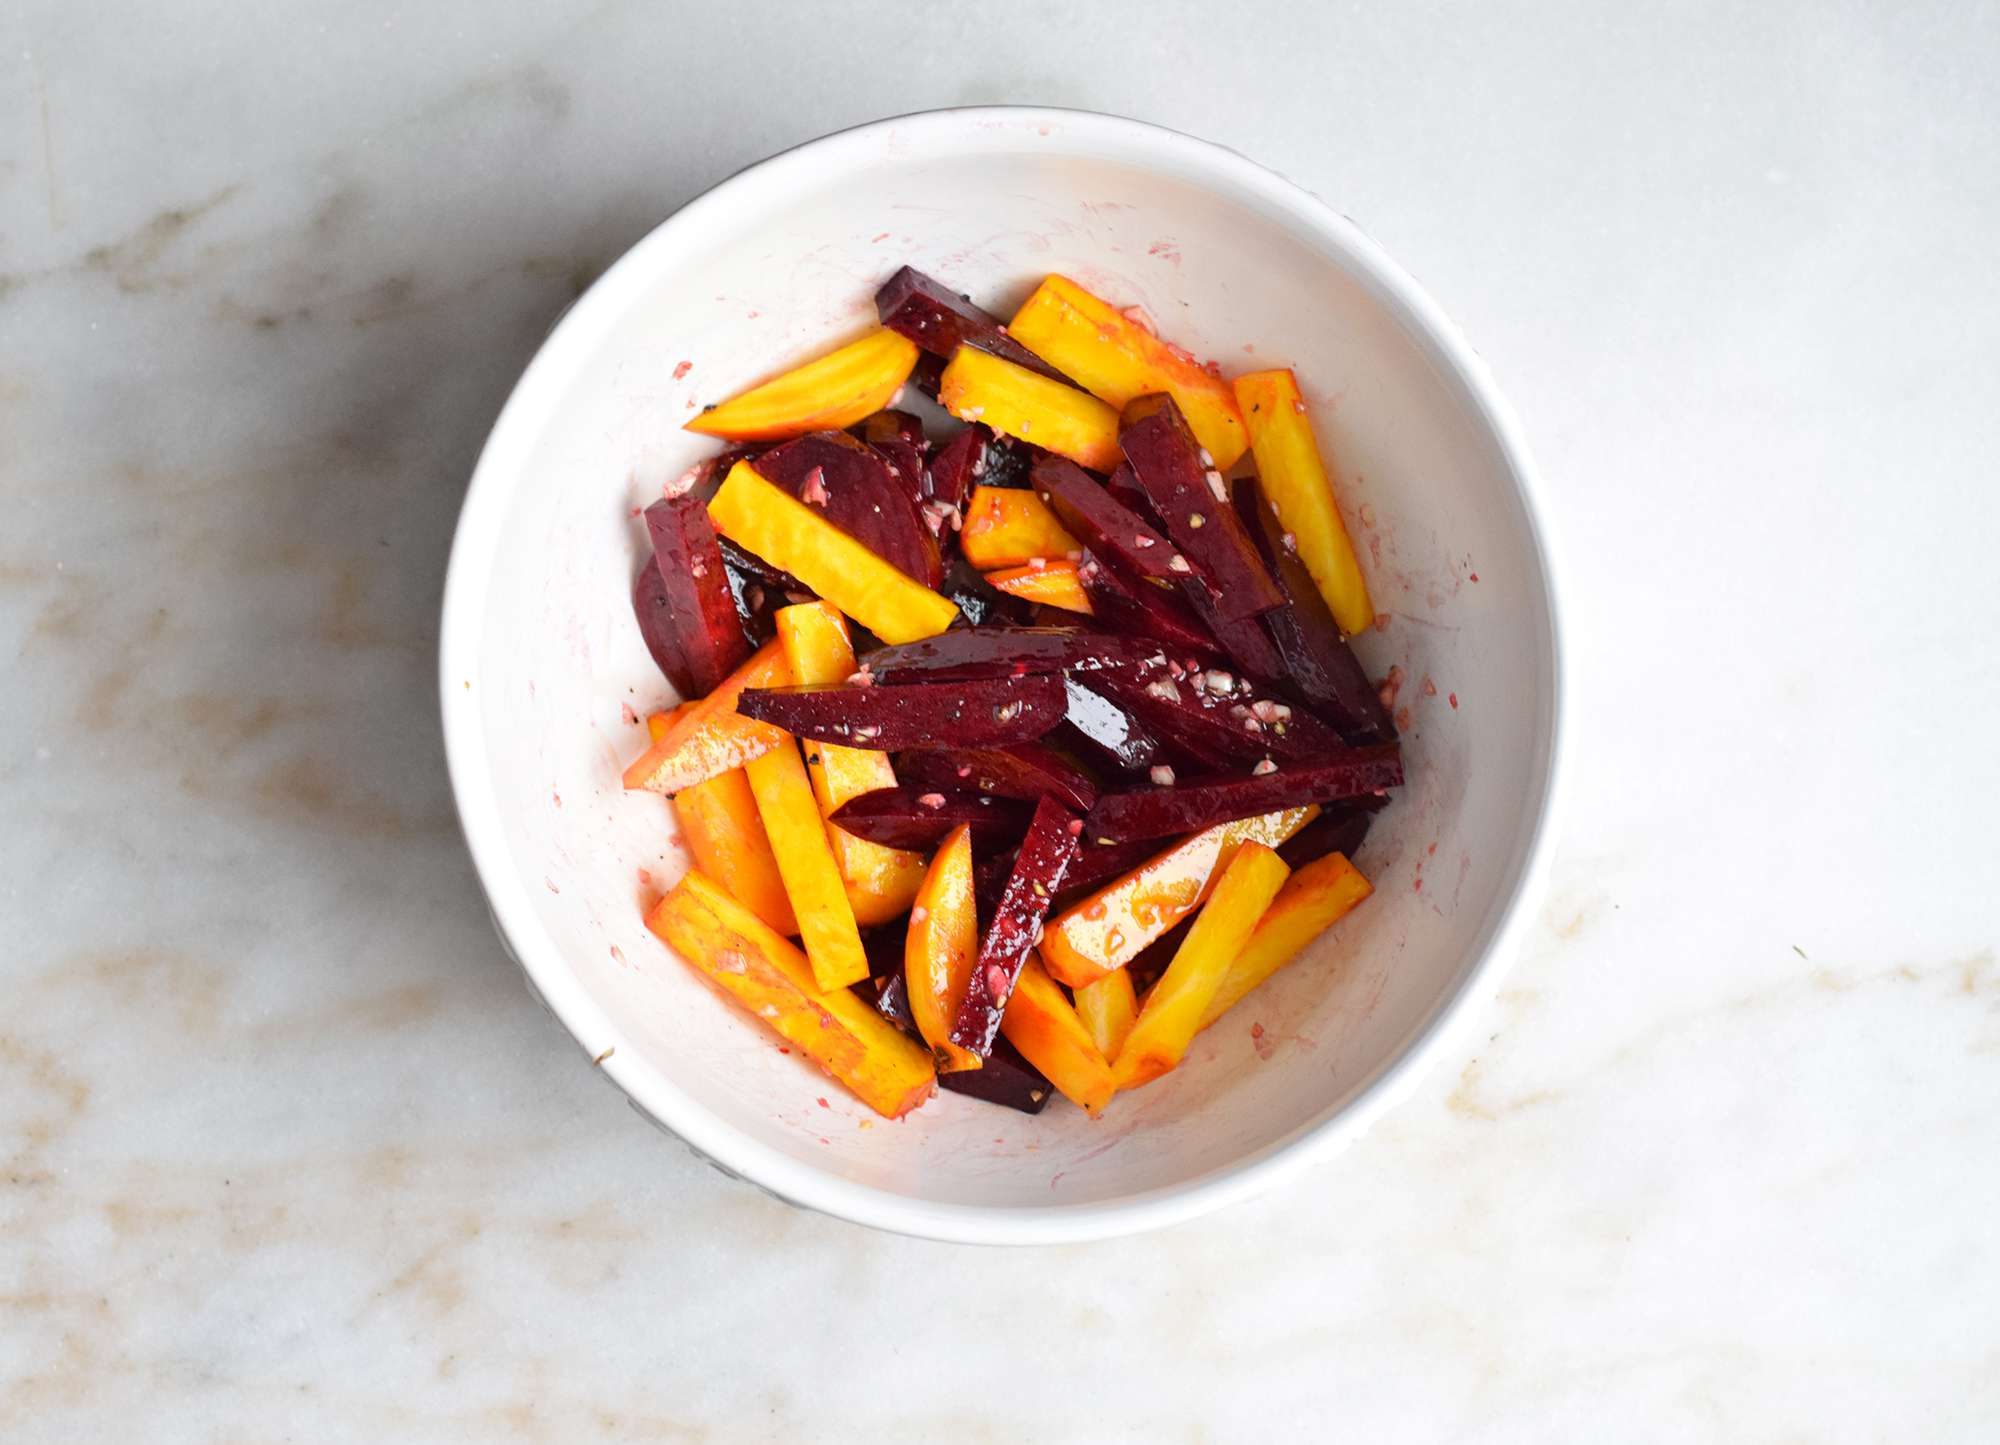 beet fries tossed with olive oil and garlic